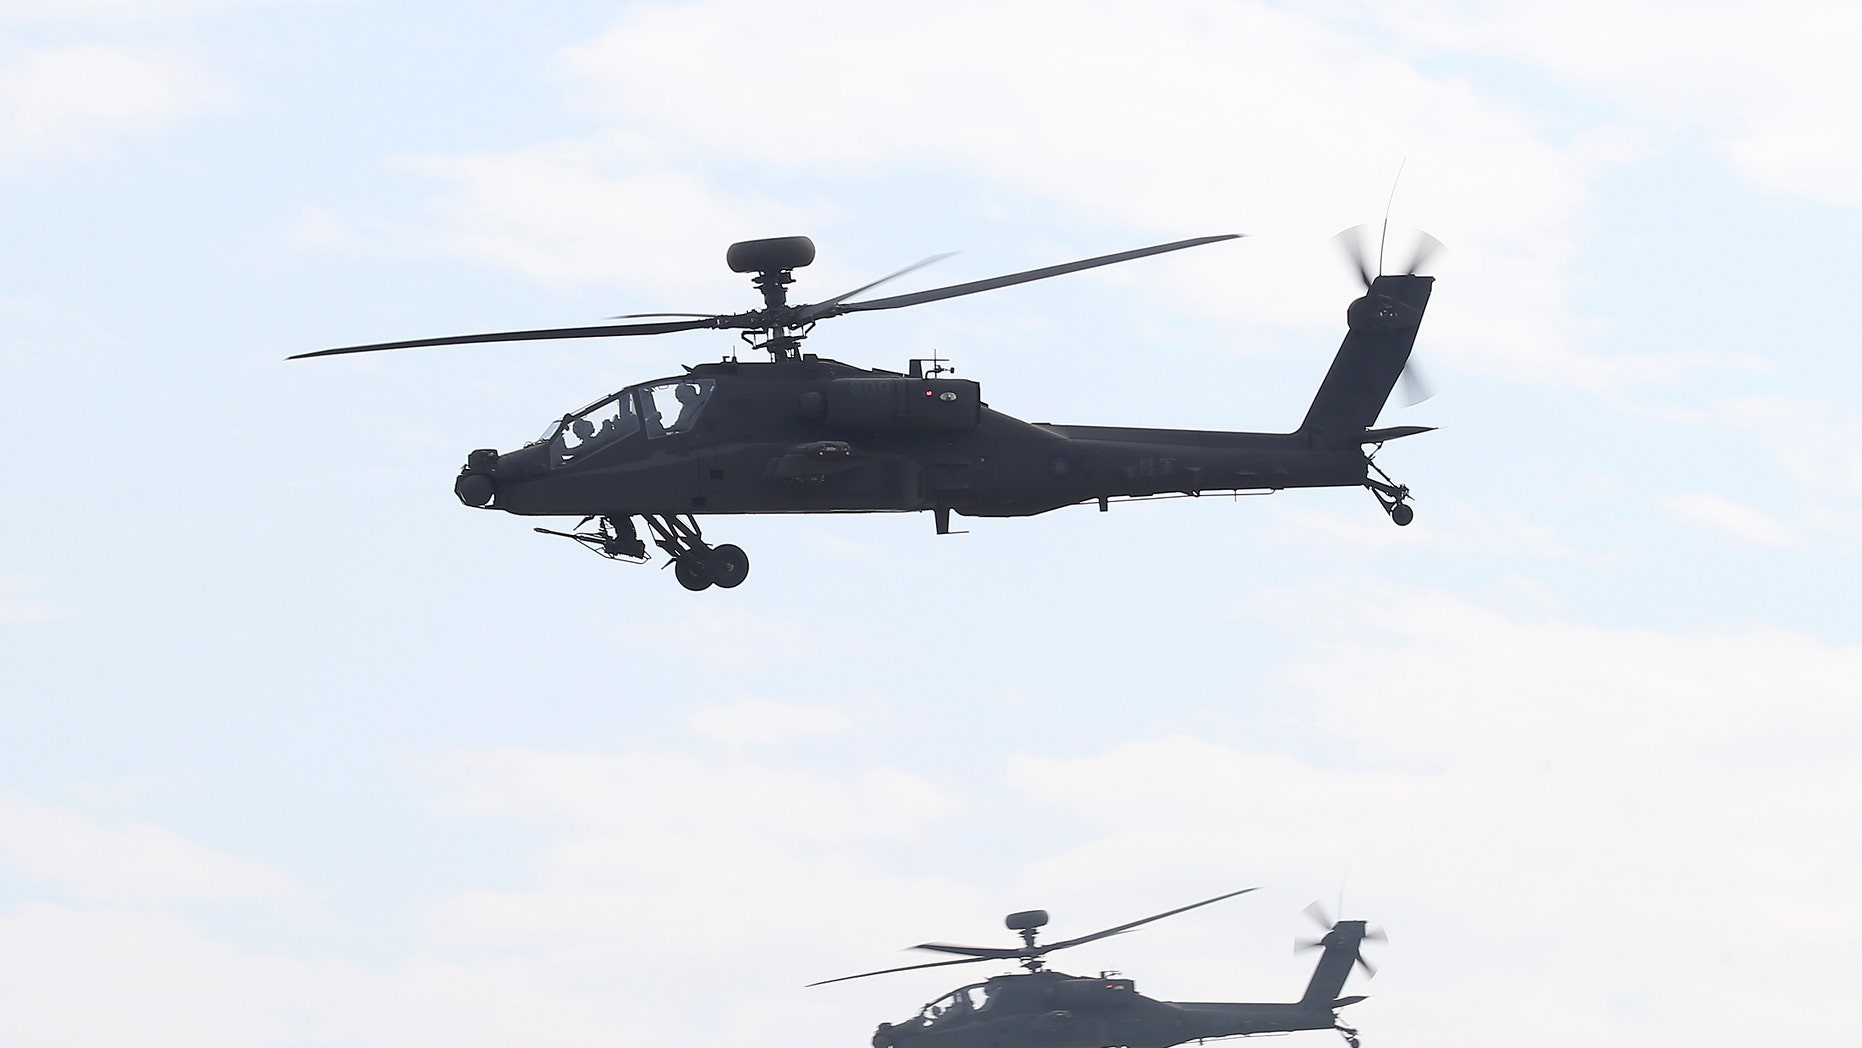 AH-64E Apache attack helicopters which are equipped with AN/APG-78 Longbow Fire Control Radar and purchased from the U.S. take part during a commissioning ceremony at the Tainan military base in Tainan, southern Taiwan.